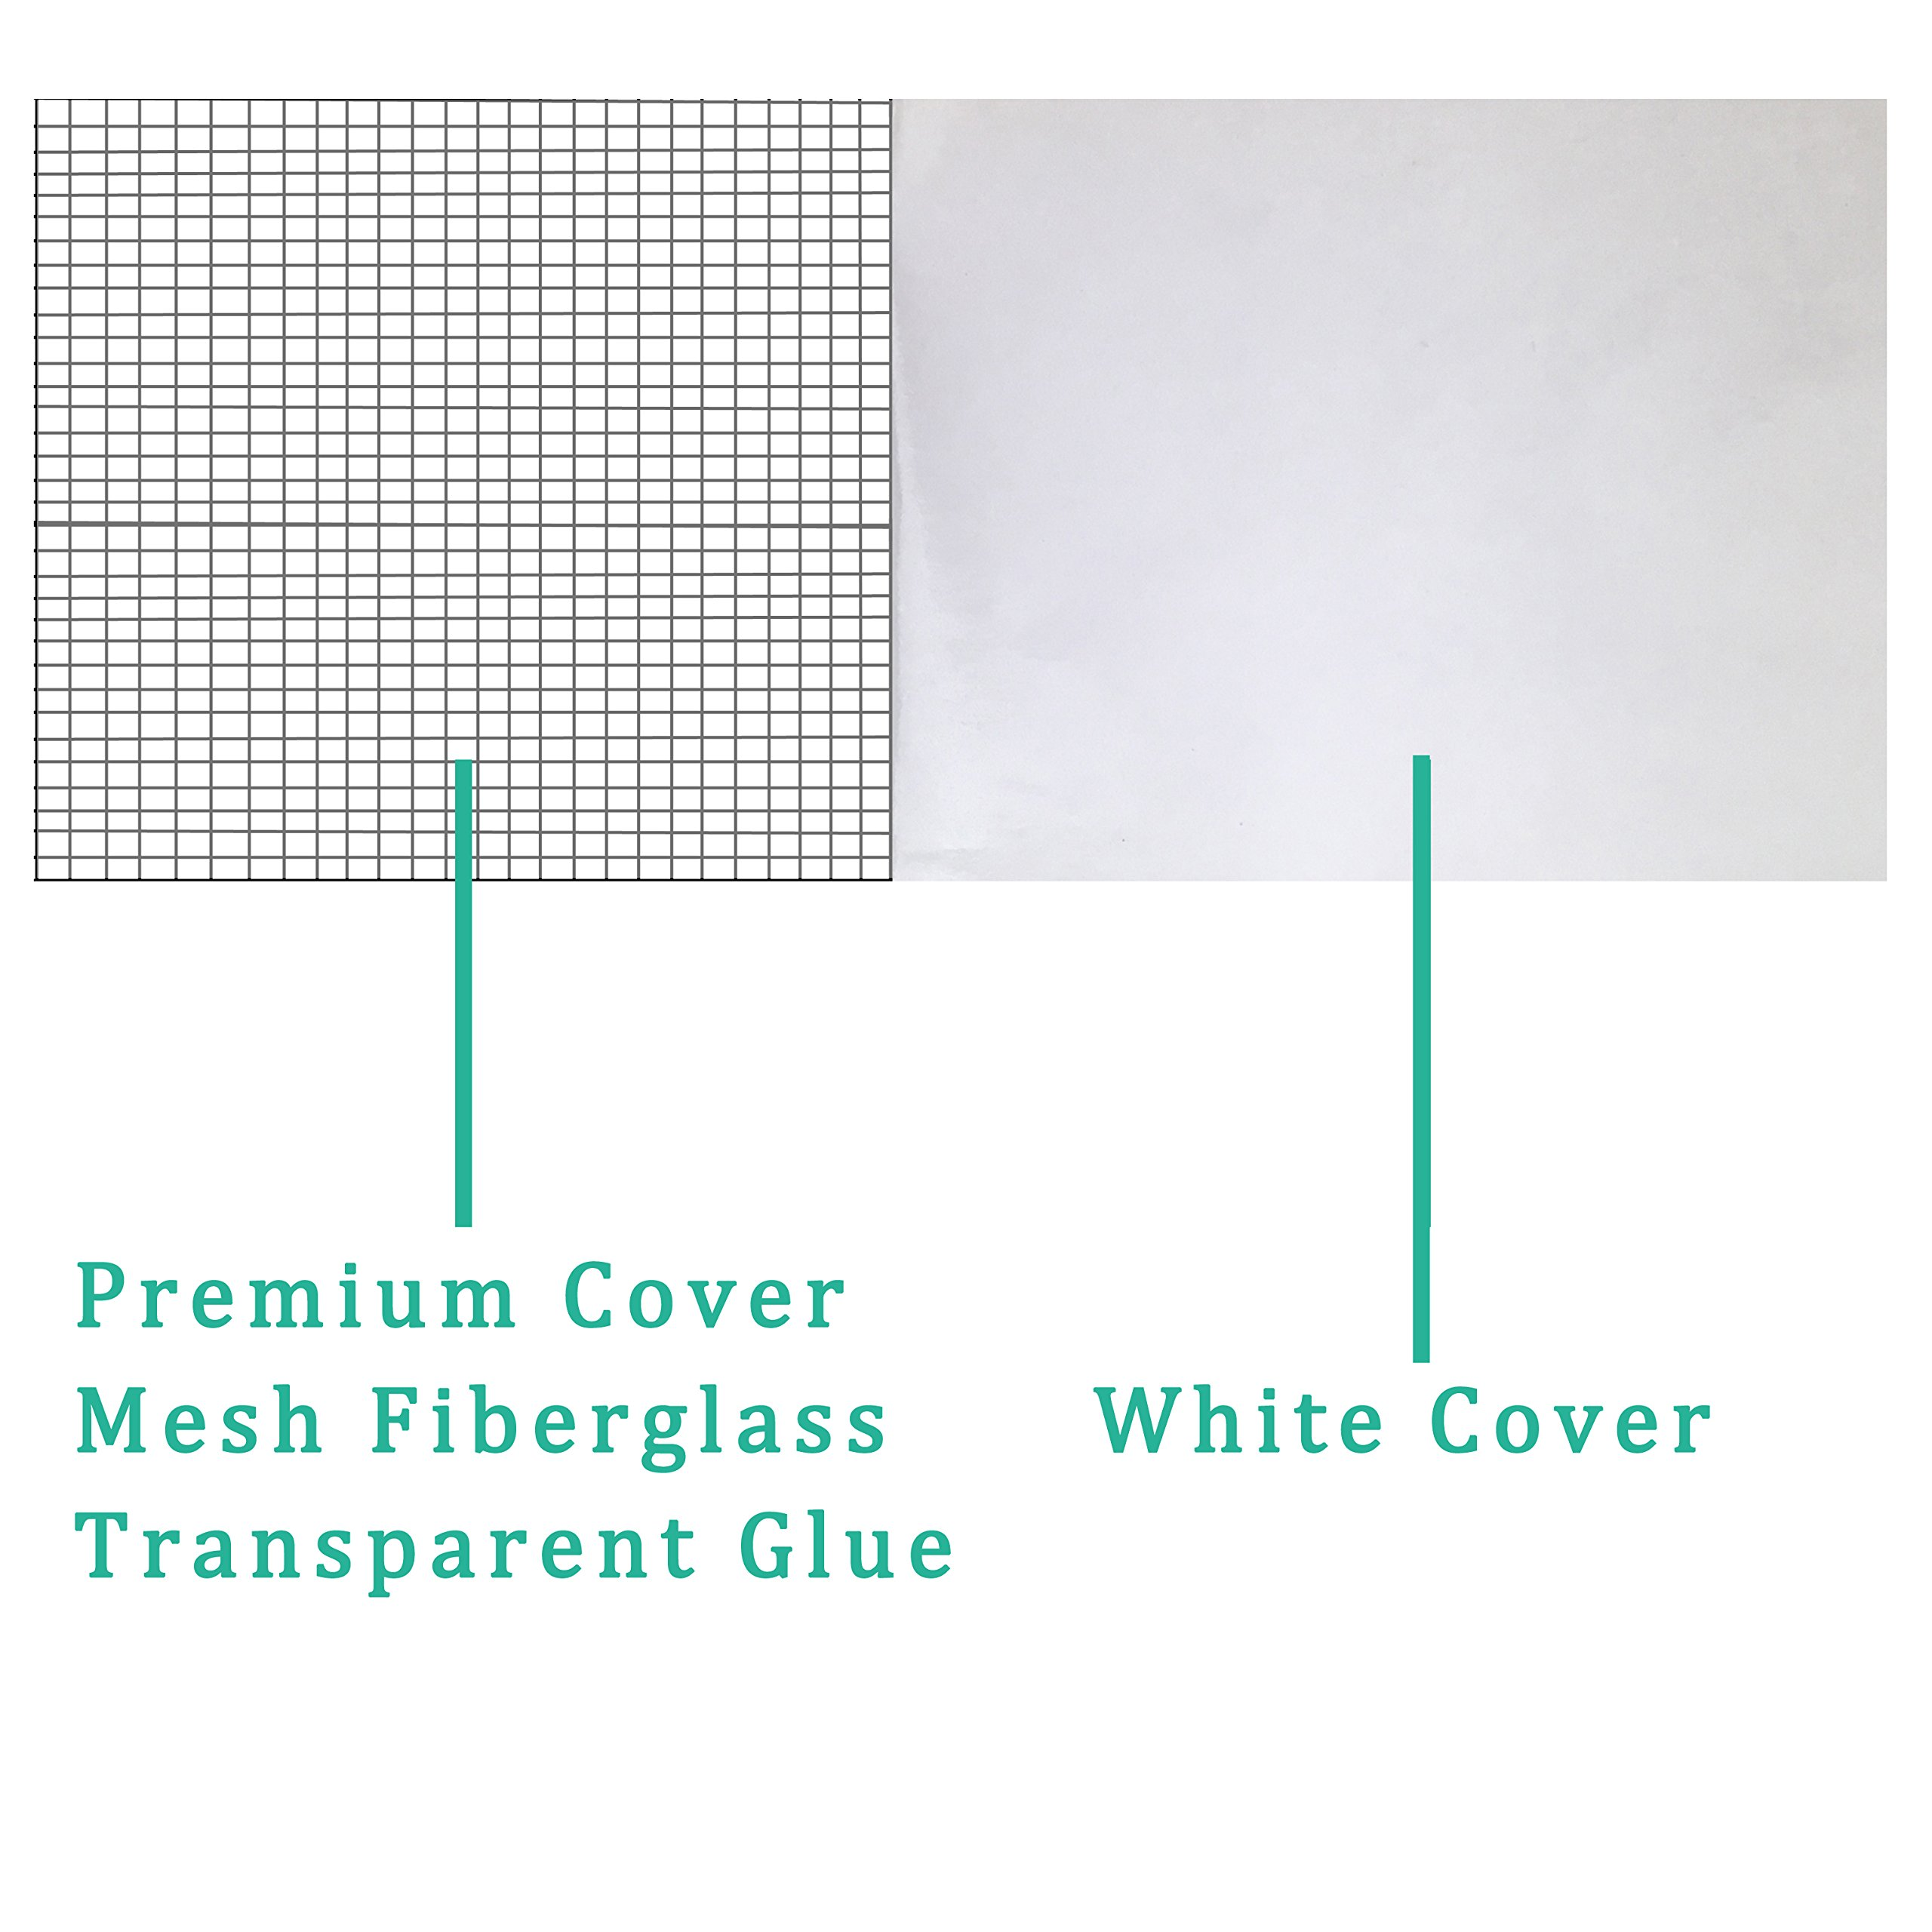 Screen Repair Tape, Window Screen Repair Kit, Strong Self-Adhesive Tape Fiberglass Mesh Tape Repair Small Hole Easy Install 30 Seconds Fix Your Screens (Black)